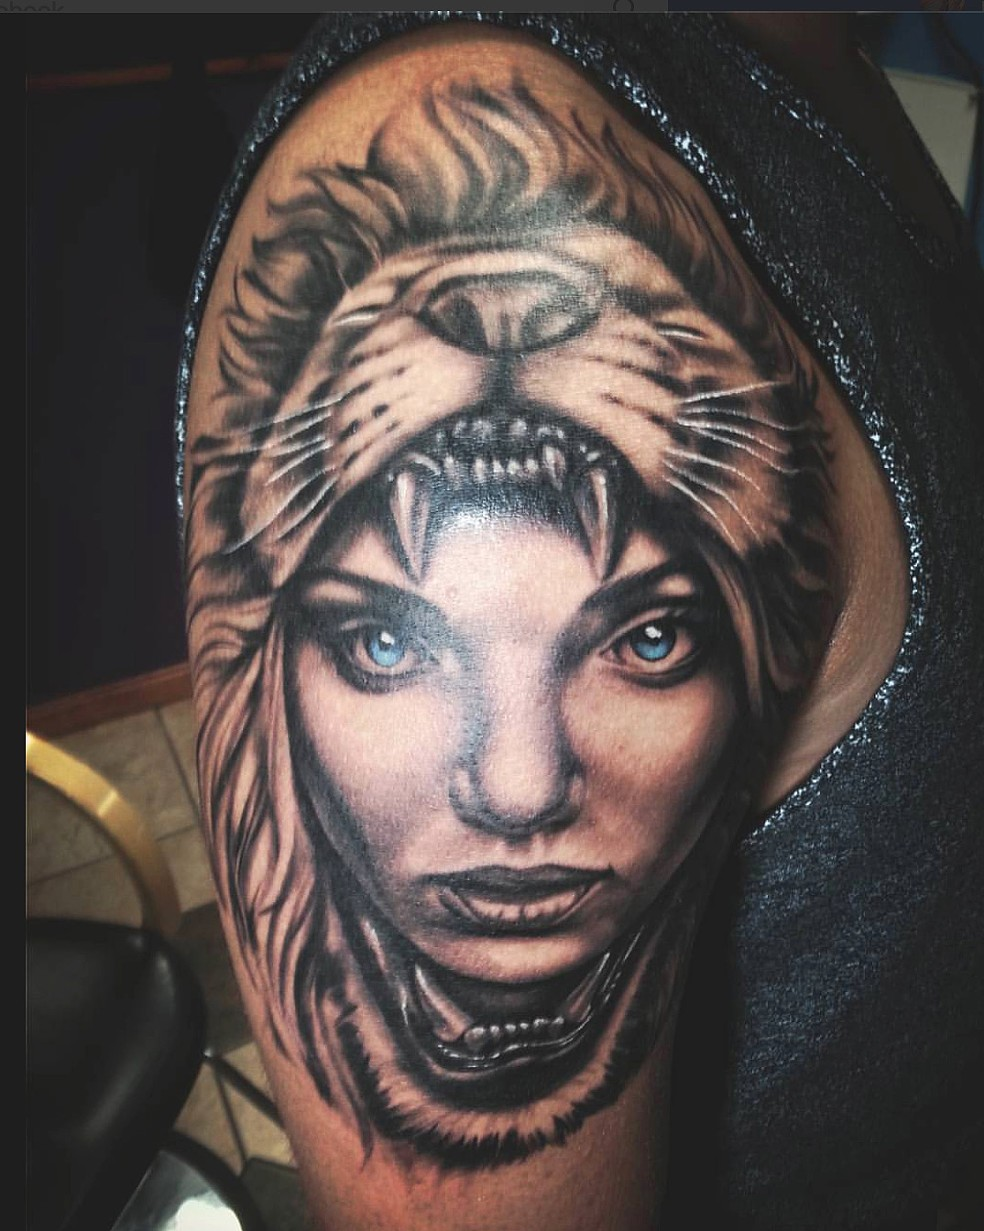 Crucial Tattoo Studio Maryland Custom Tattoos Lion Headdress Girl